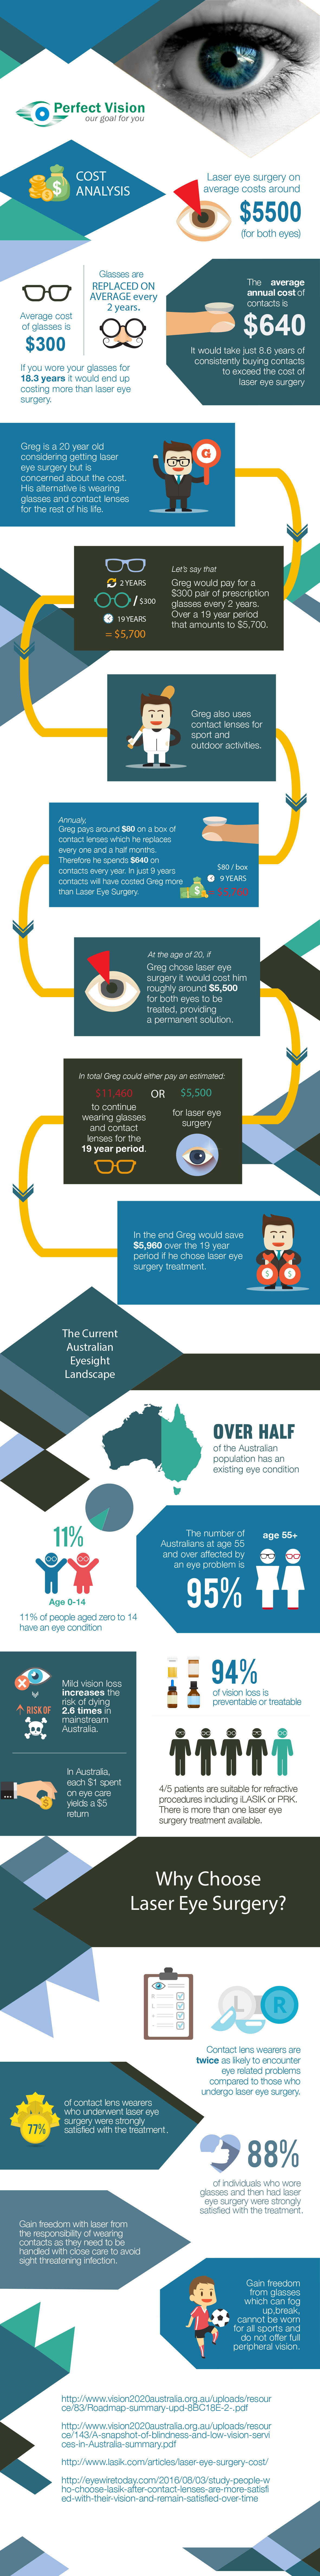 Costs of Laser Eye Surgery vs Glasses/Contact Lenses